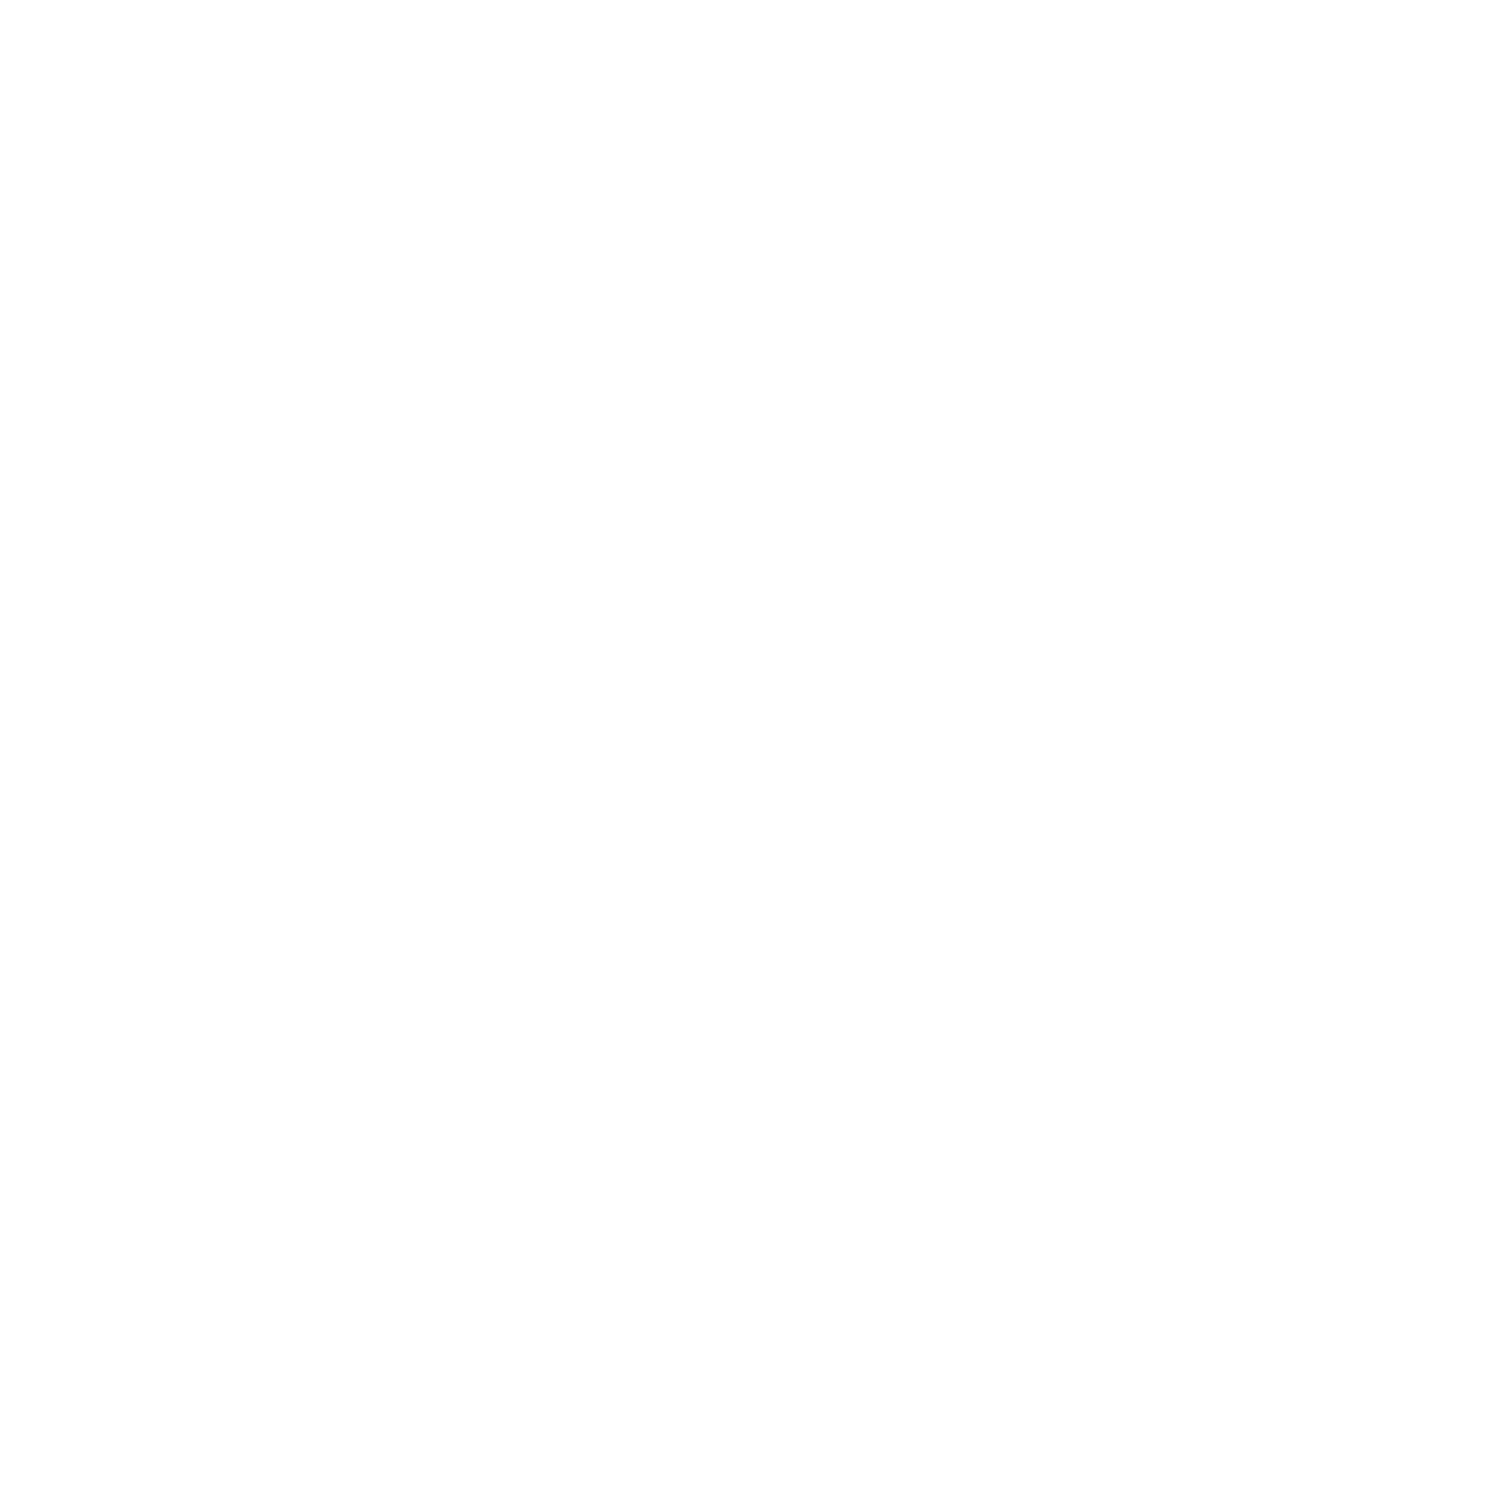 Information about the culture route of Dalarna.